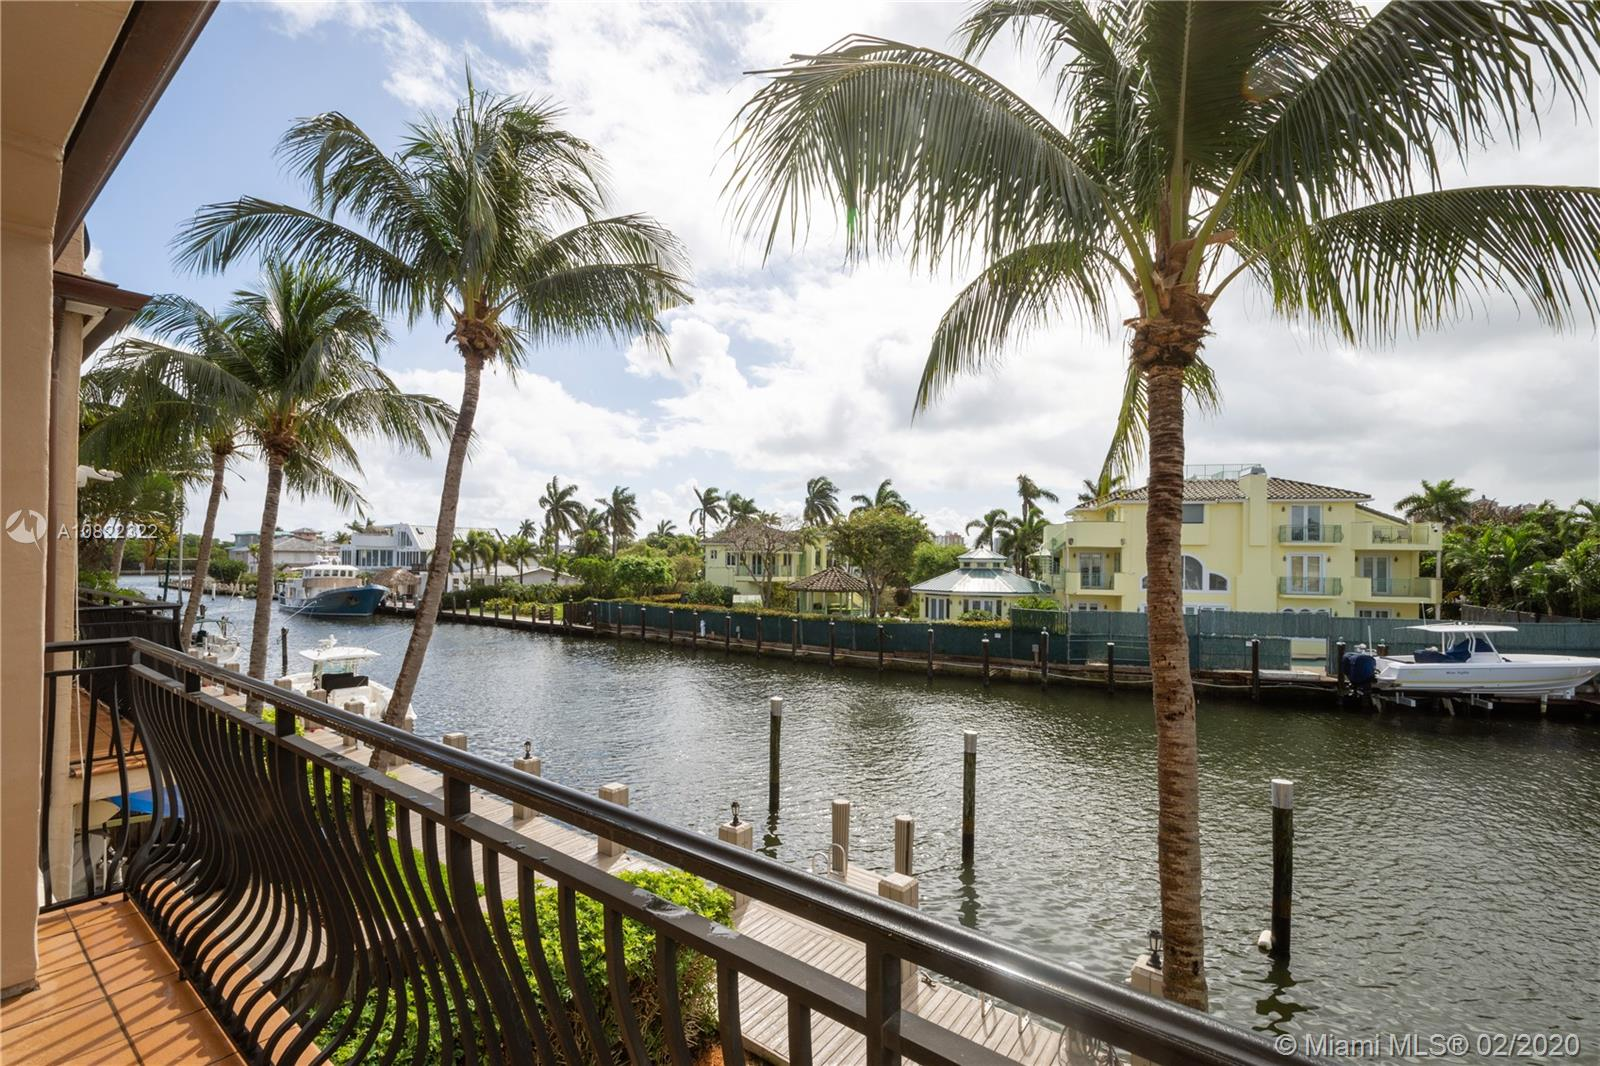 "NO FIXED BRIDGES (Deep Water) Private Dock allowing for 30'-40' Boat right out back! This Magnificent Townhome offers 3 Beds, 2 Full Baths, 2 Powder Rooms. Private Interior Elevator to whisk your Guests to SPACIOUS Roof Top Deck w/ Outdoor Bar & Expansive views of Intercoastal, Ft Lauderdale Skyline to help keep the Party going! LOADED with Natural Light, and Recessed Lighting throughout, Built in 2002 w/ Integrated ""Smart Home"" Technology. Master offers Balcony overlooking Intercoastal, dual closets, seperate Shower and Oversized Spa Tub. Pavered Drive leading to 2 Car Garage, accommoding 2 add'l Cars. 2nd Floor Laundry Room, 2 Zone A/C, Desirable Coral Ridge Enclave w/easy access to Yacht Club & Bayview Elementary, Beach, Shopping & Dining. Dock includes Power and Water, BRING THE BOAT!"